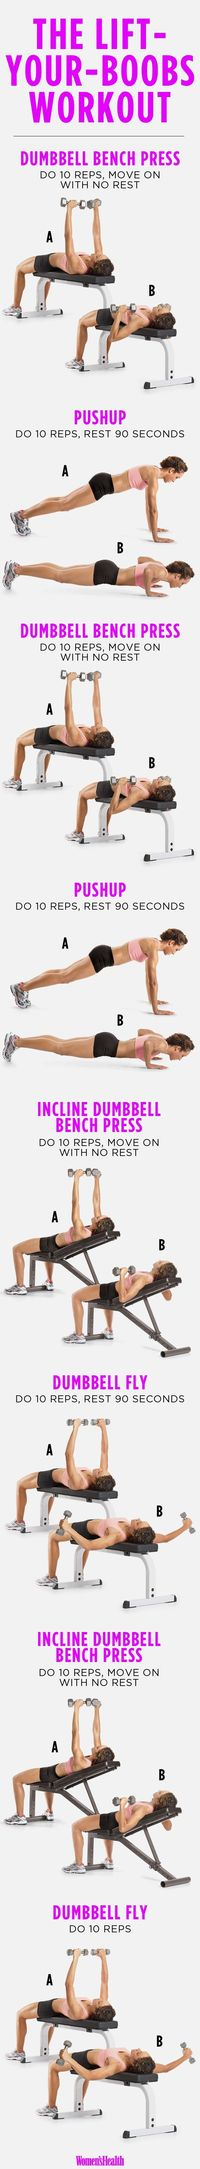 4 Exercises to Lift Your Boobs